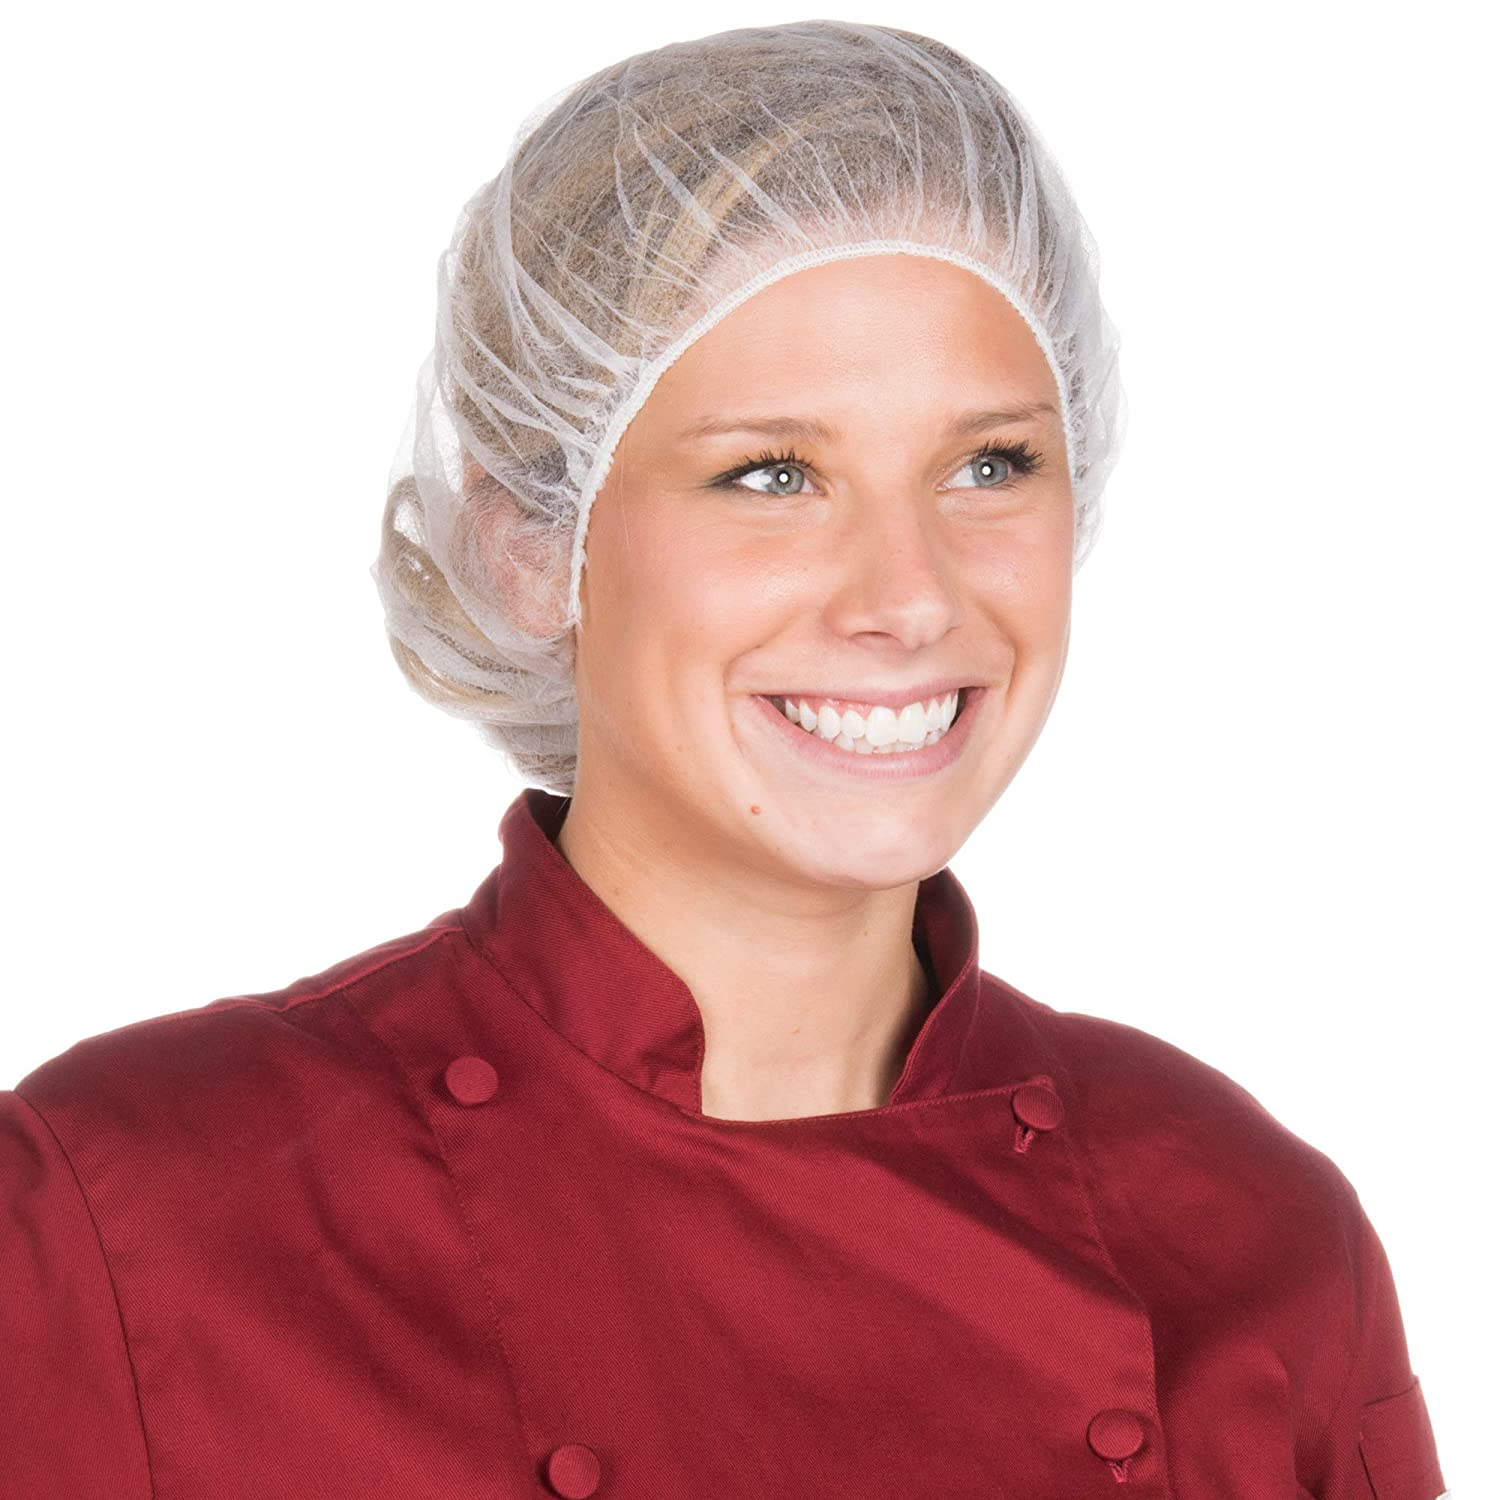 Hair Net Bouffant - White Disposable Hair Nets, Light Disposable Bouffant Cap For Food Service, Surgical Caps, Healthcare facility, Laboratories & Restaurants, Regular/Large, White (24 In)